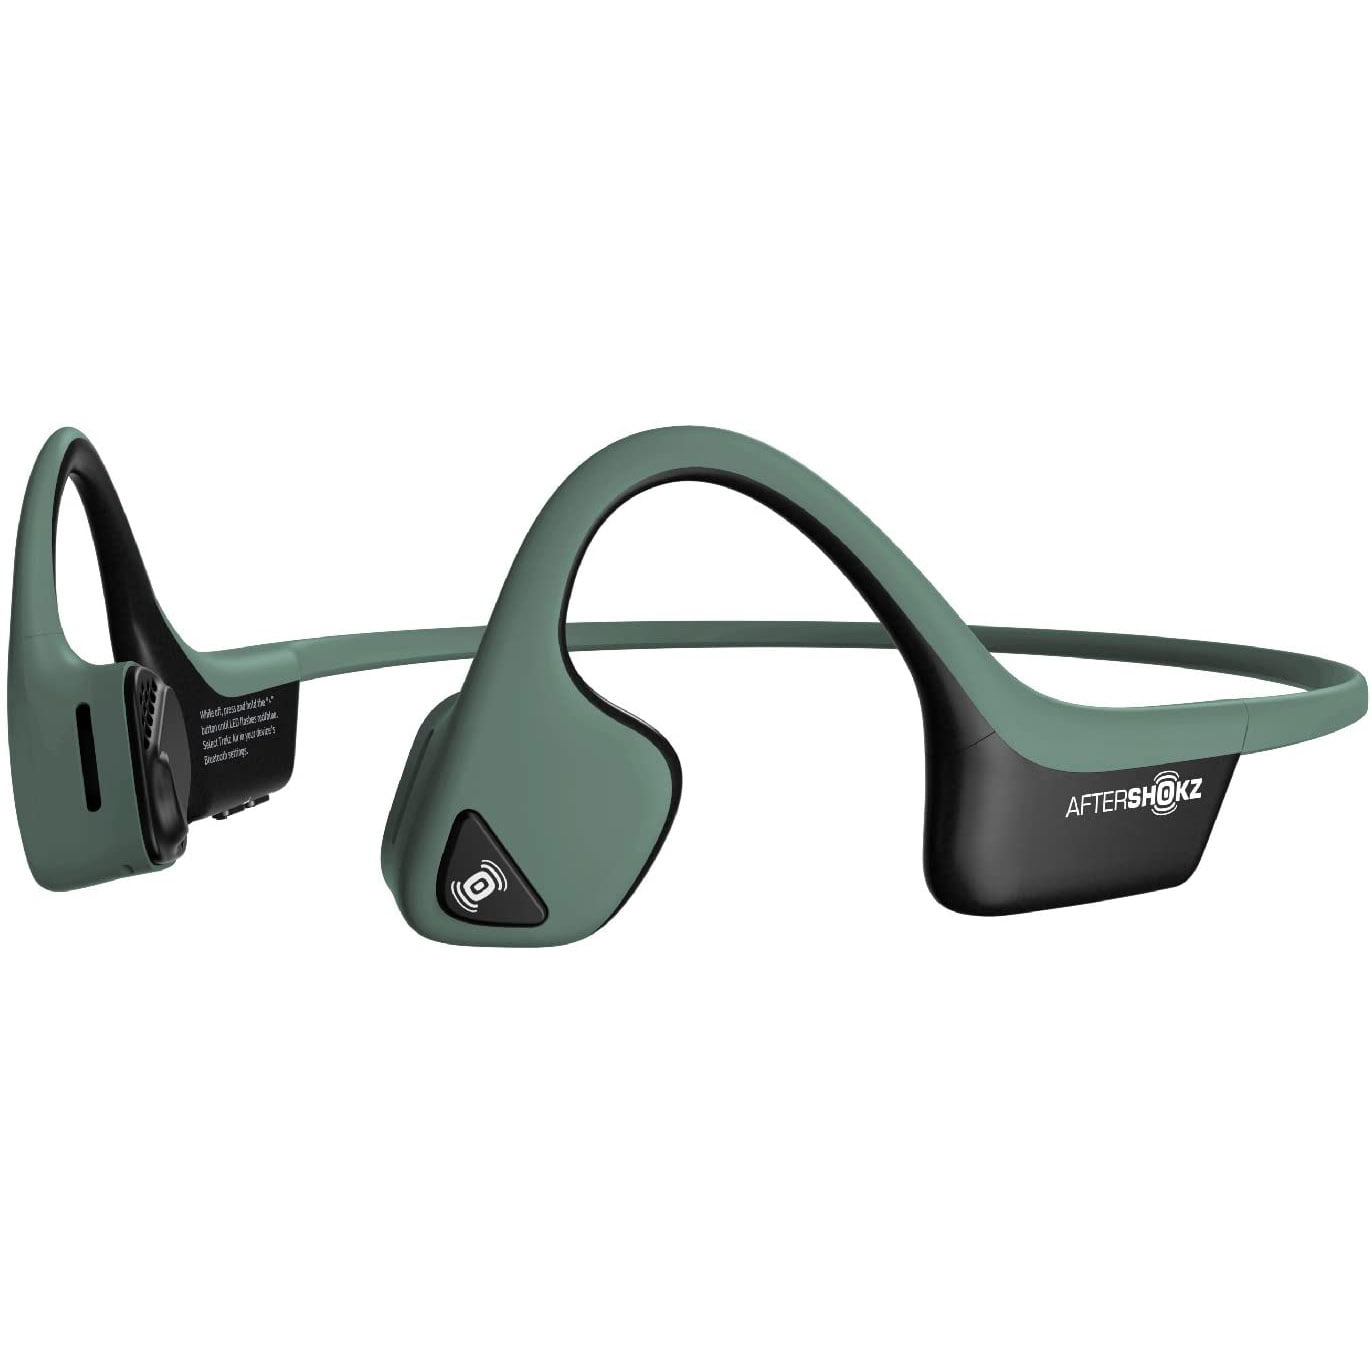 Casti Behind the Ear Aftershokz Trekz Air AS650, Conductie prin os, Wireless, Portable Case, IP55, Forest Green